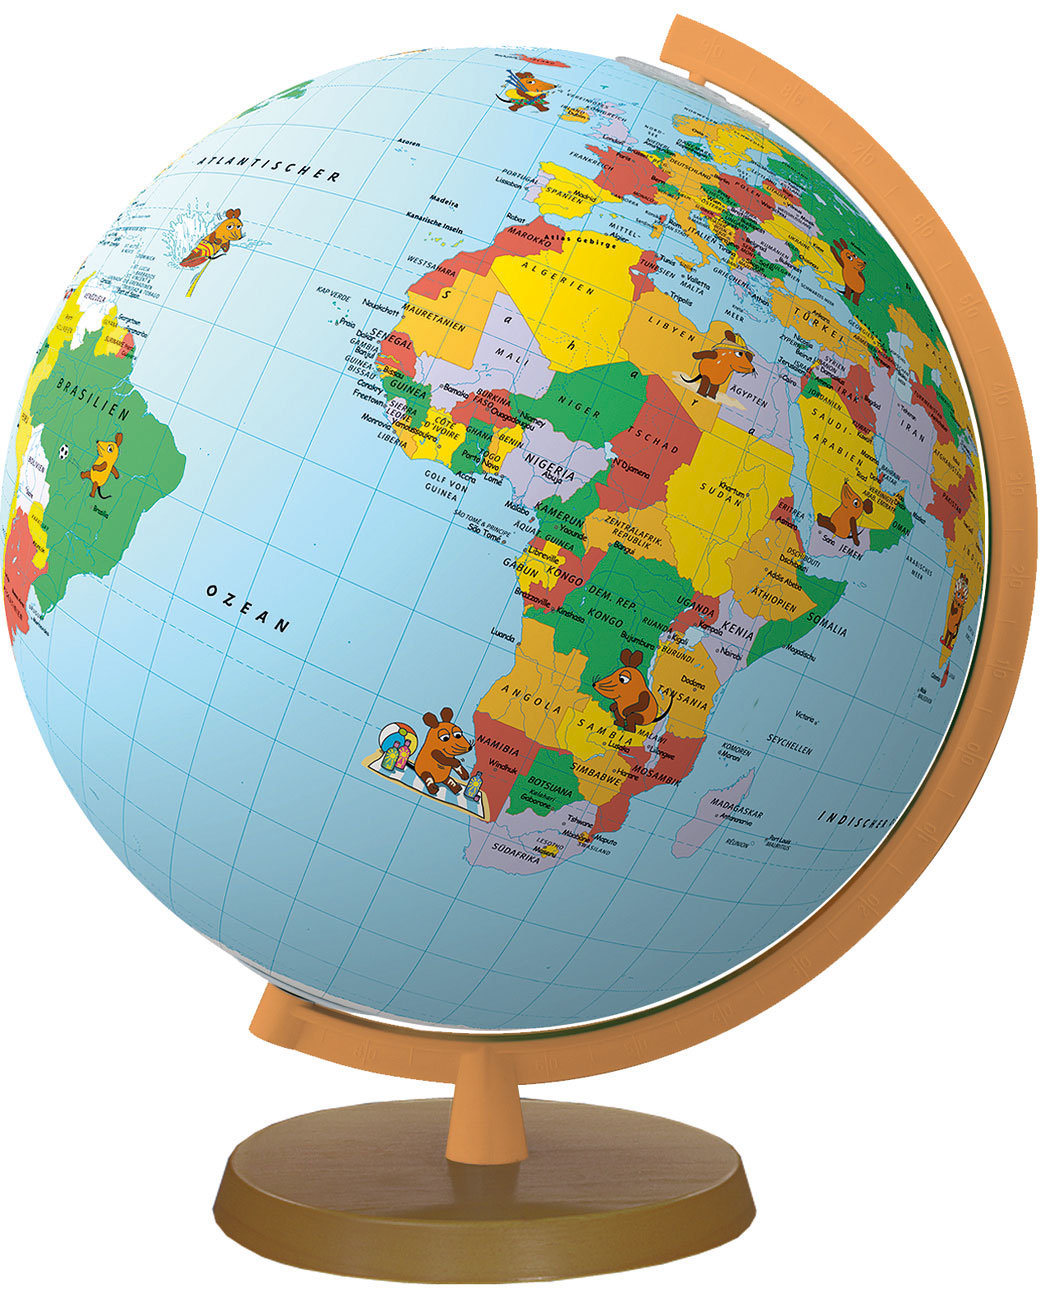 Continent worldmap 3d globe powerpoint earth question symbol earth shaped map gumiabroncs Image collections